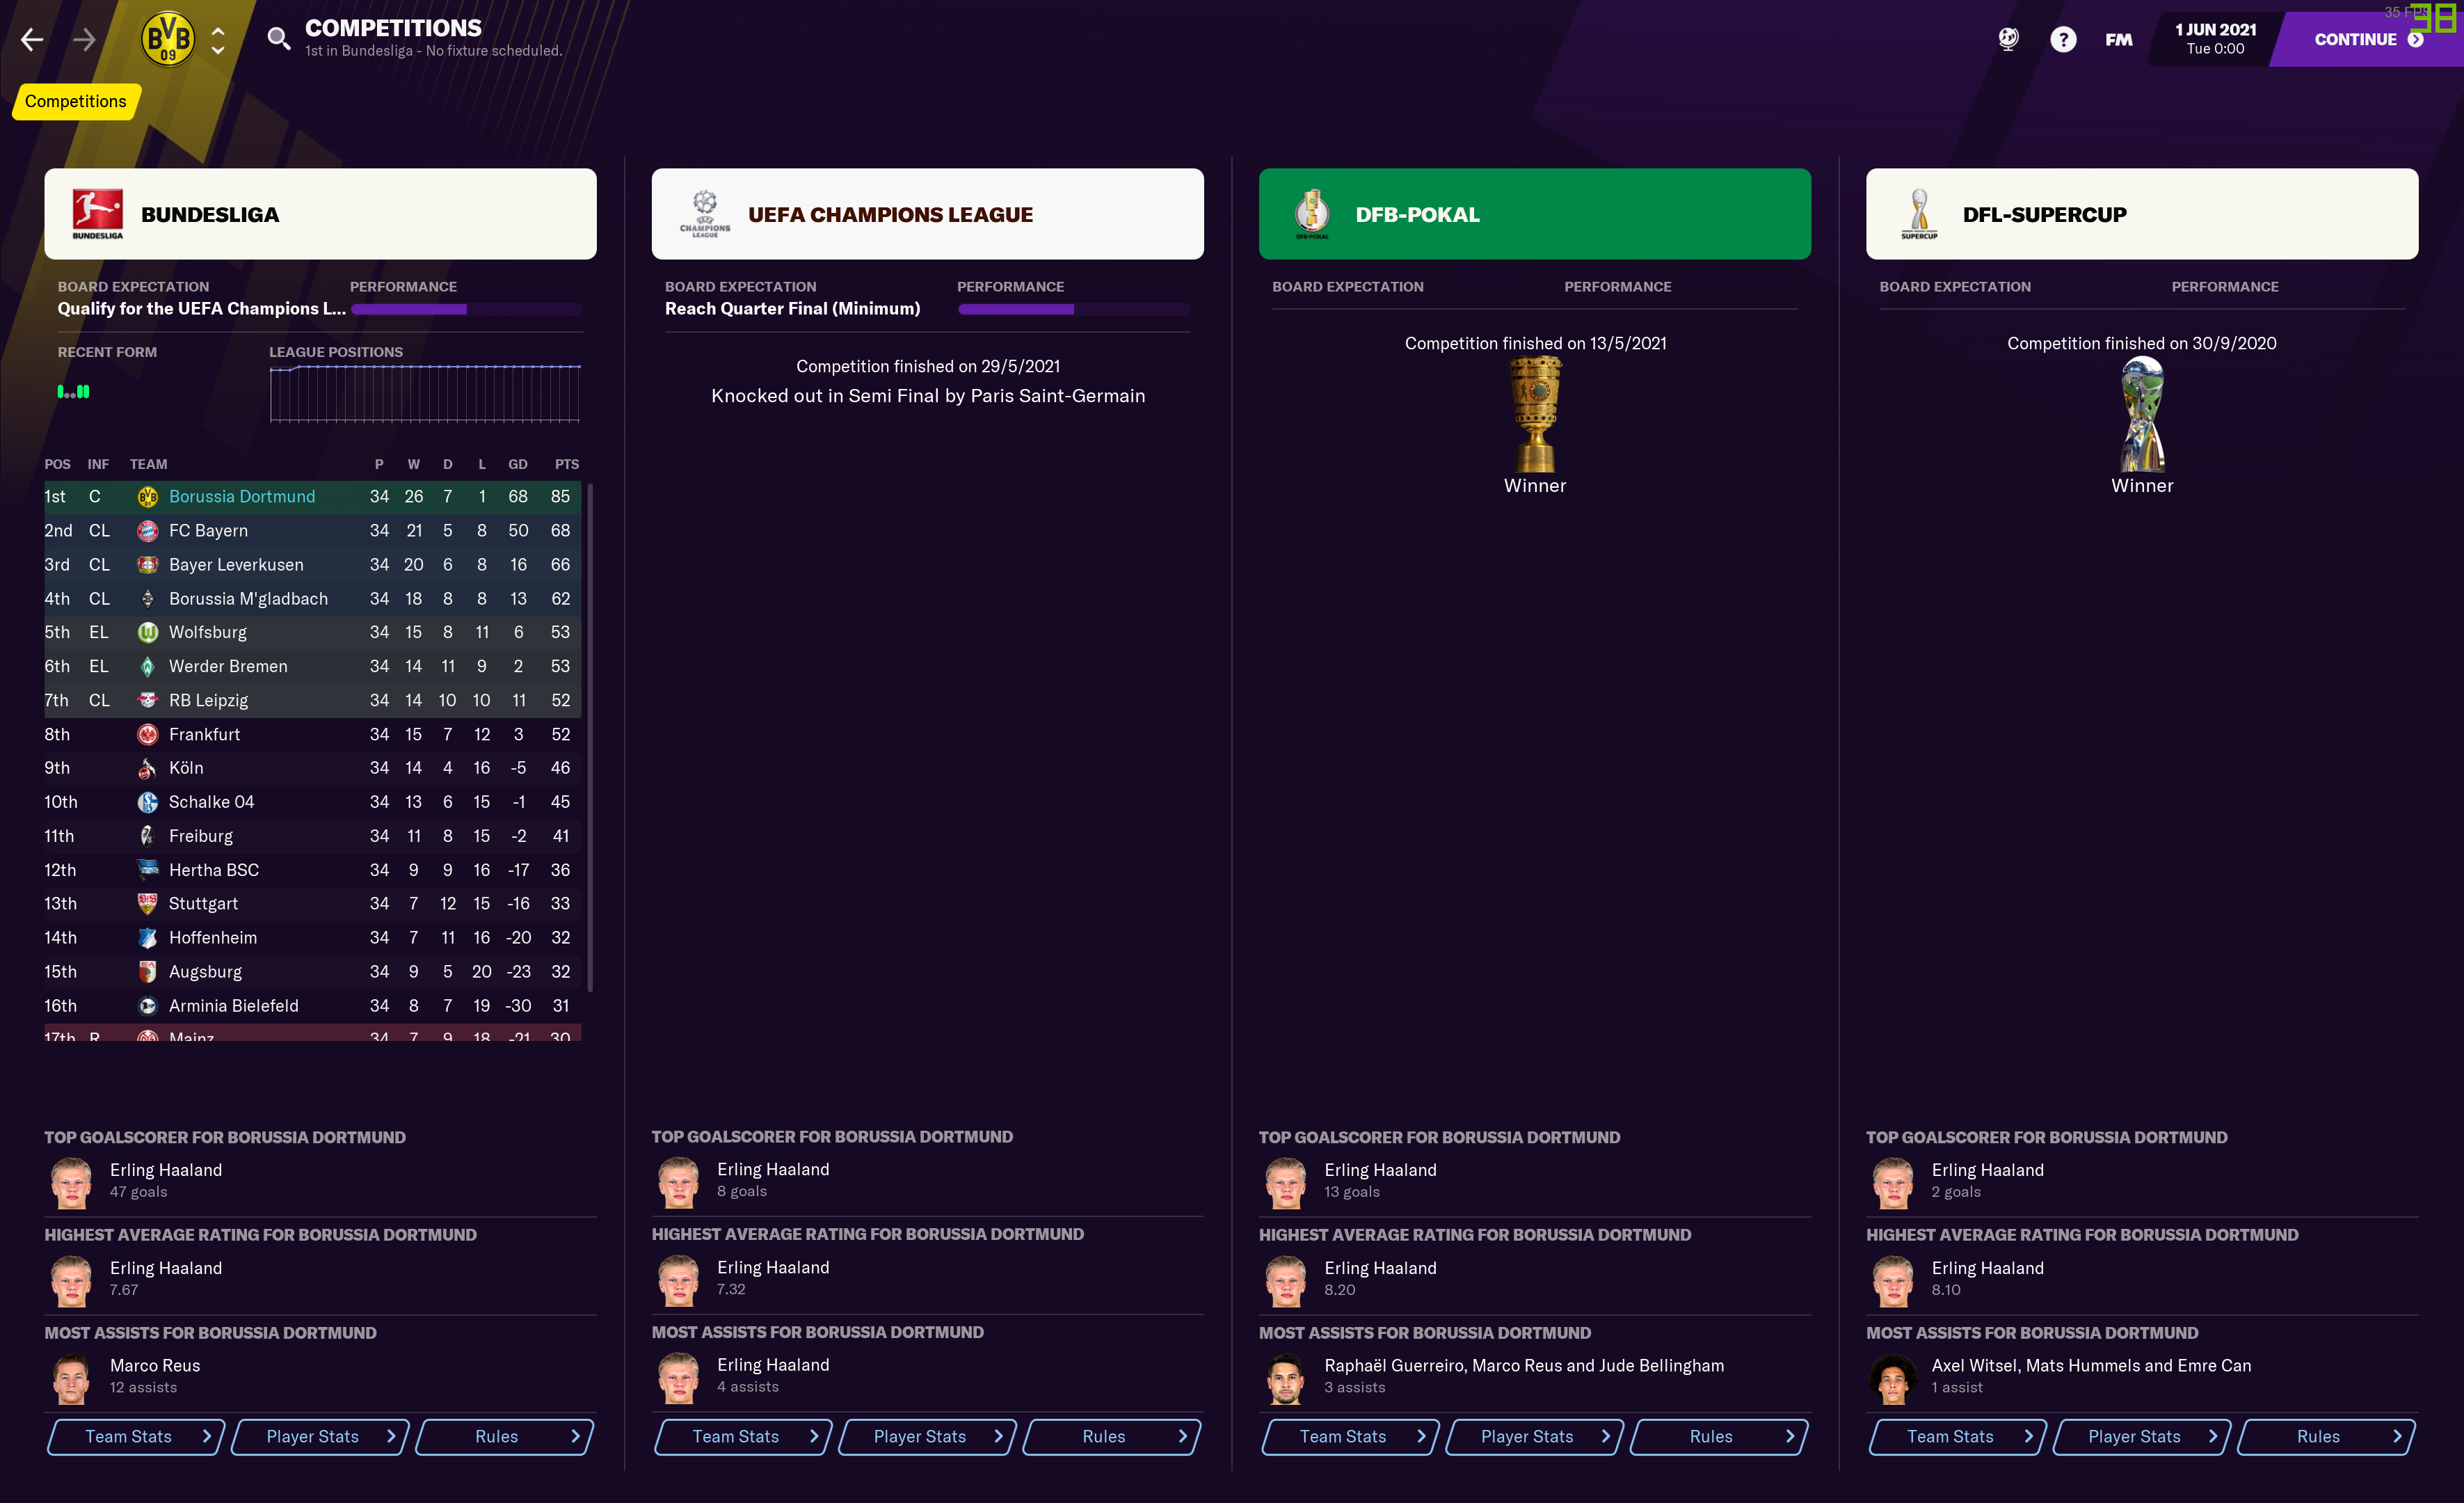 08 Dortmund Competitions - Domestic Treble.PNG